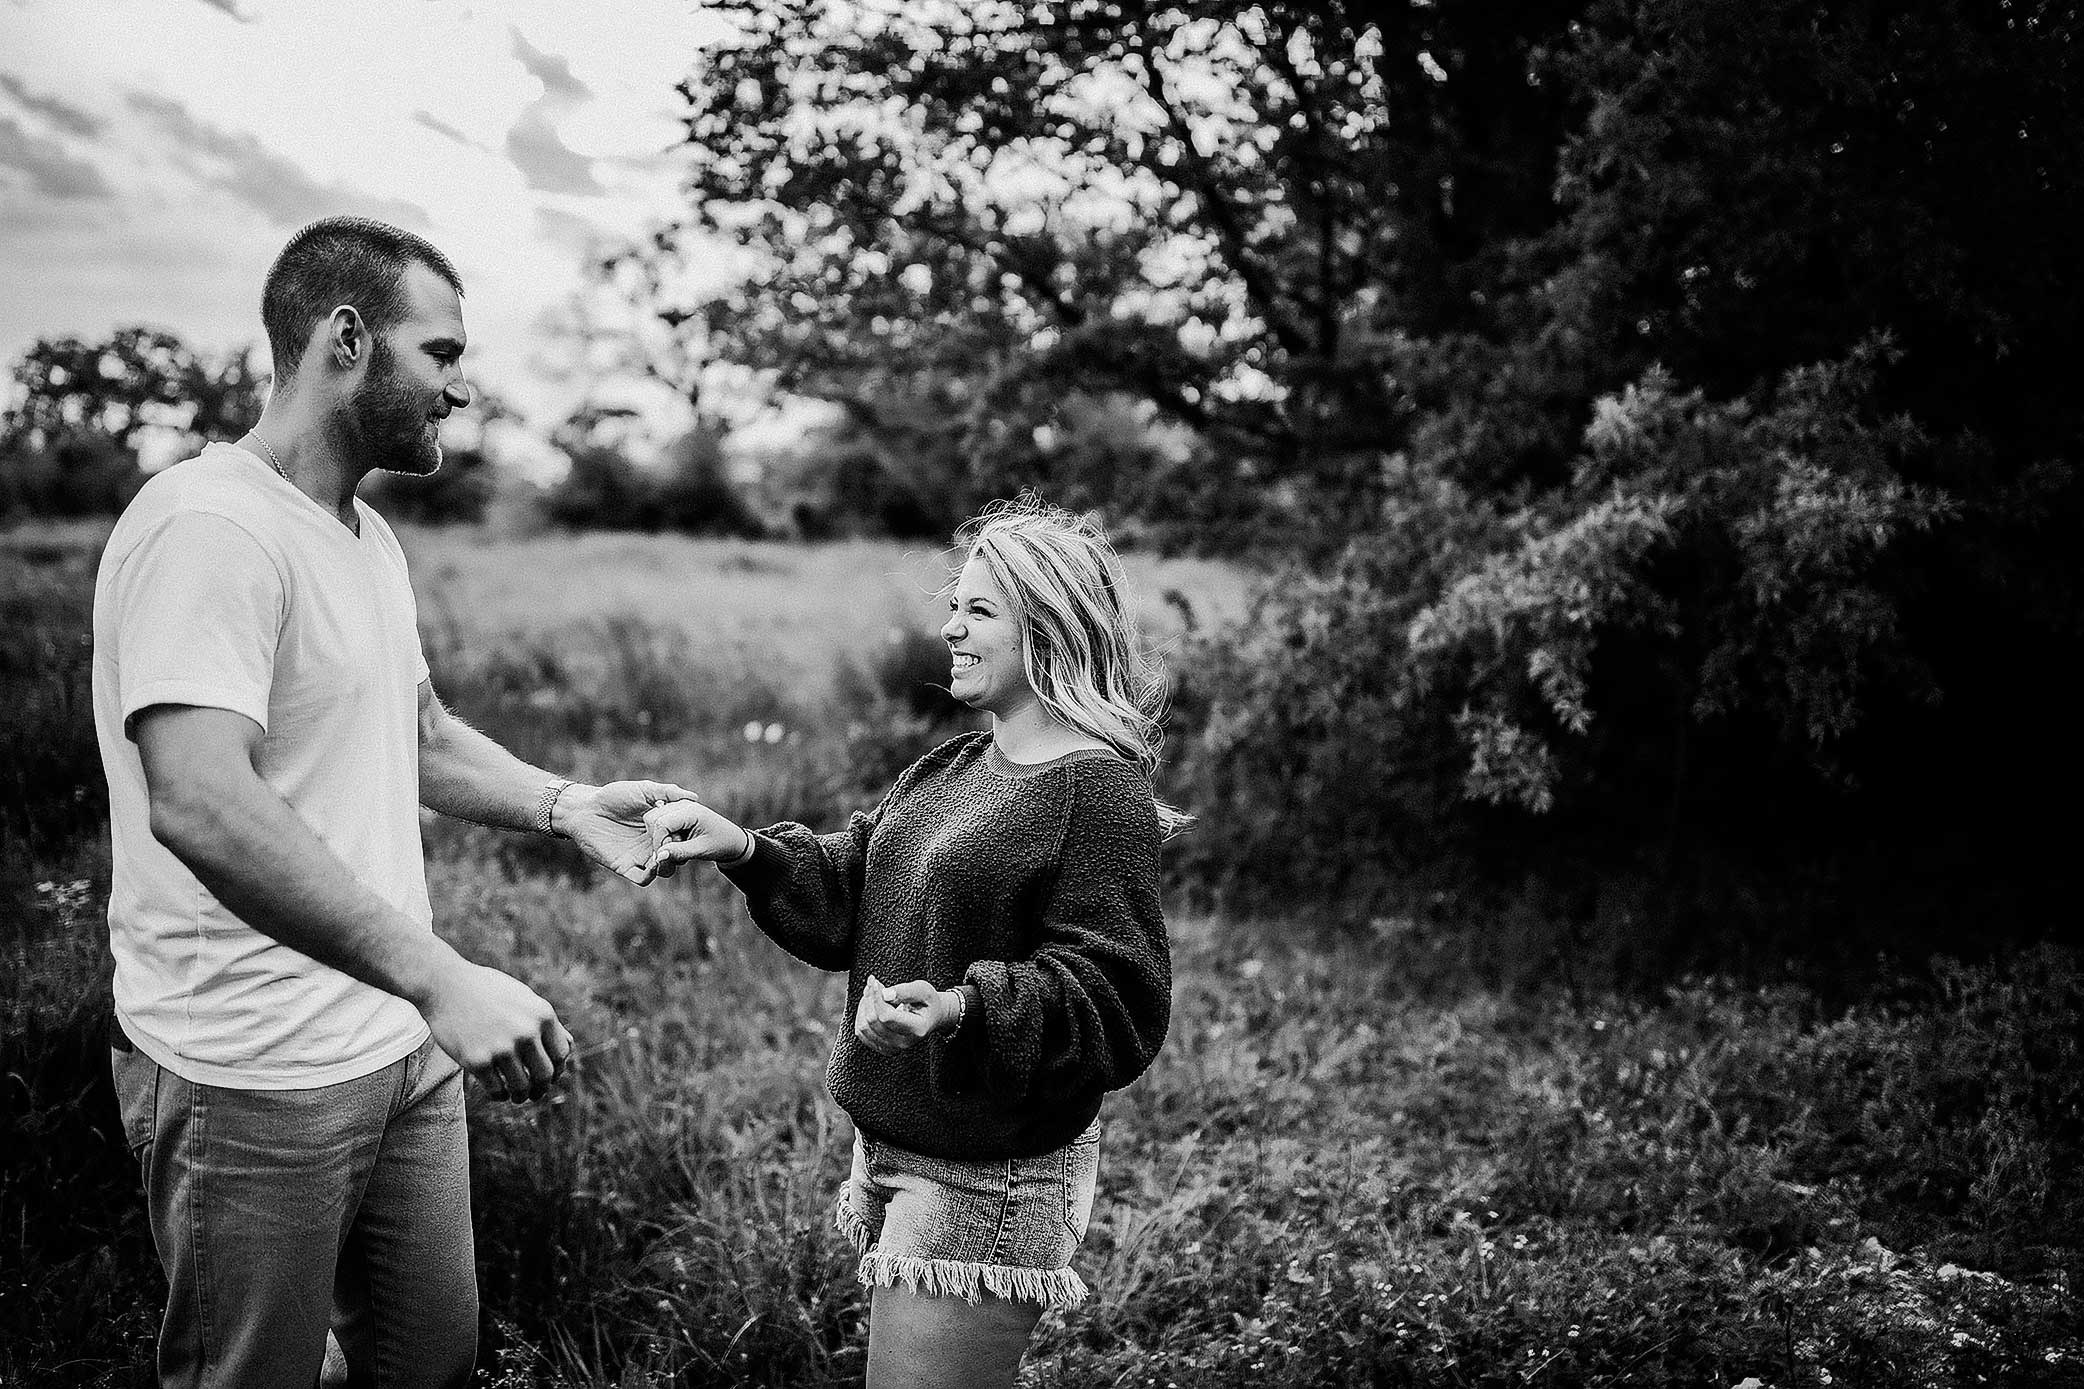 shelby-schiller-photography-couples-dancing-in-nature-field.jpg